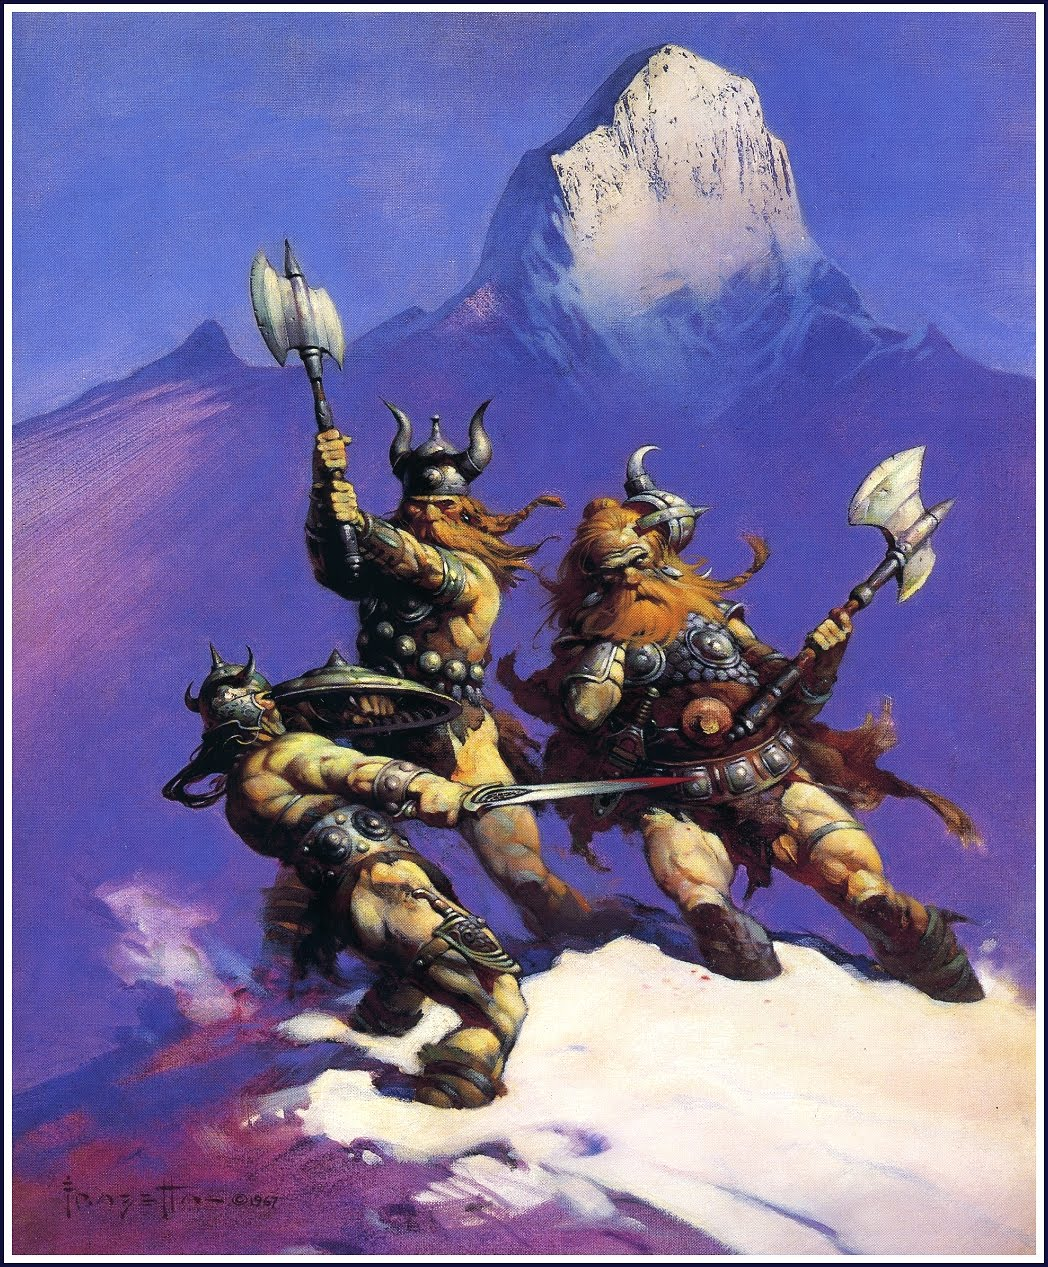 Conan of Cimmeria - by Frank Frazetta